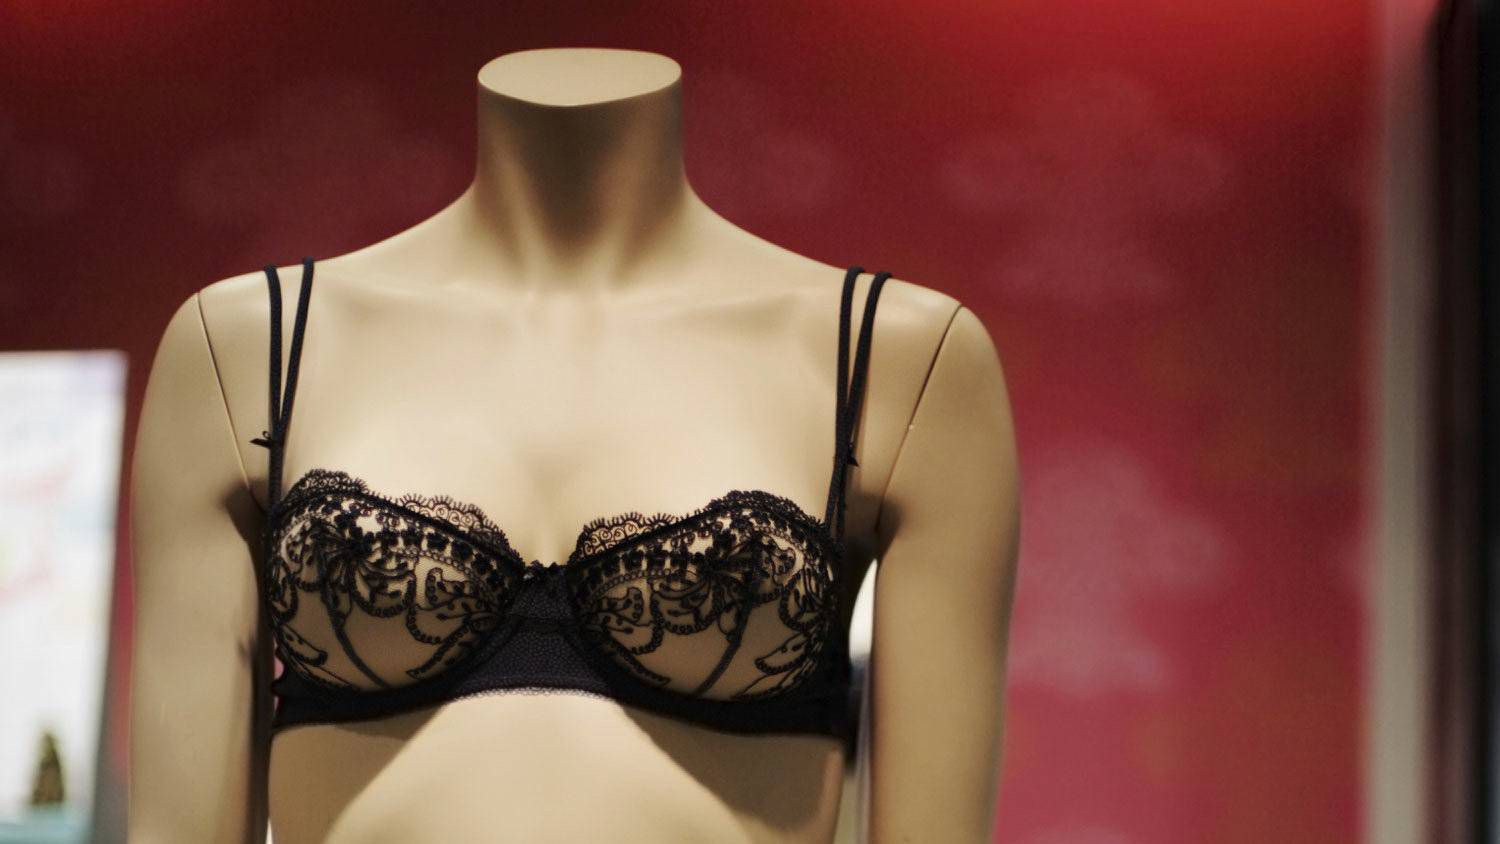 01c1bcb7f1 My wife won t wear the sexy lingerie I bought her - The Globe and Mail